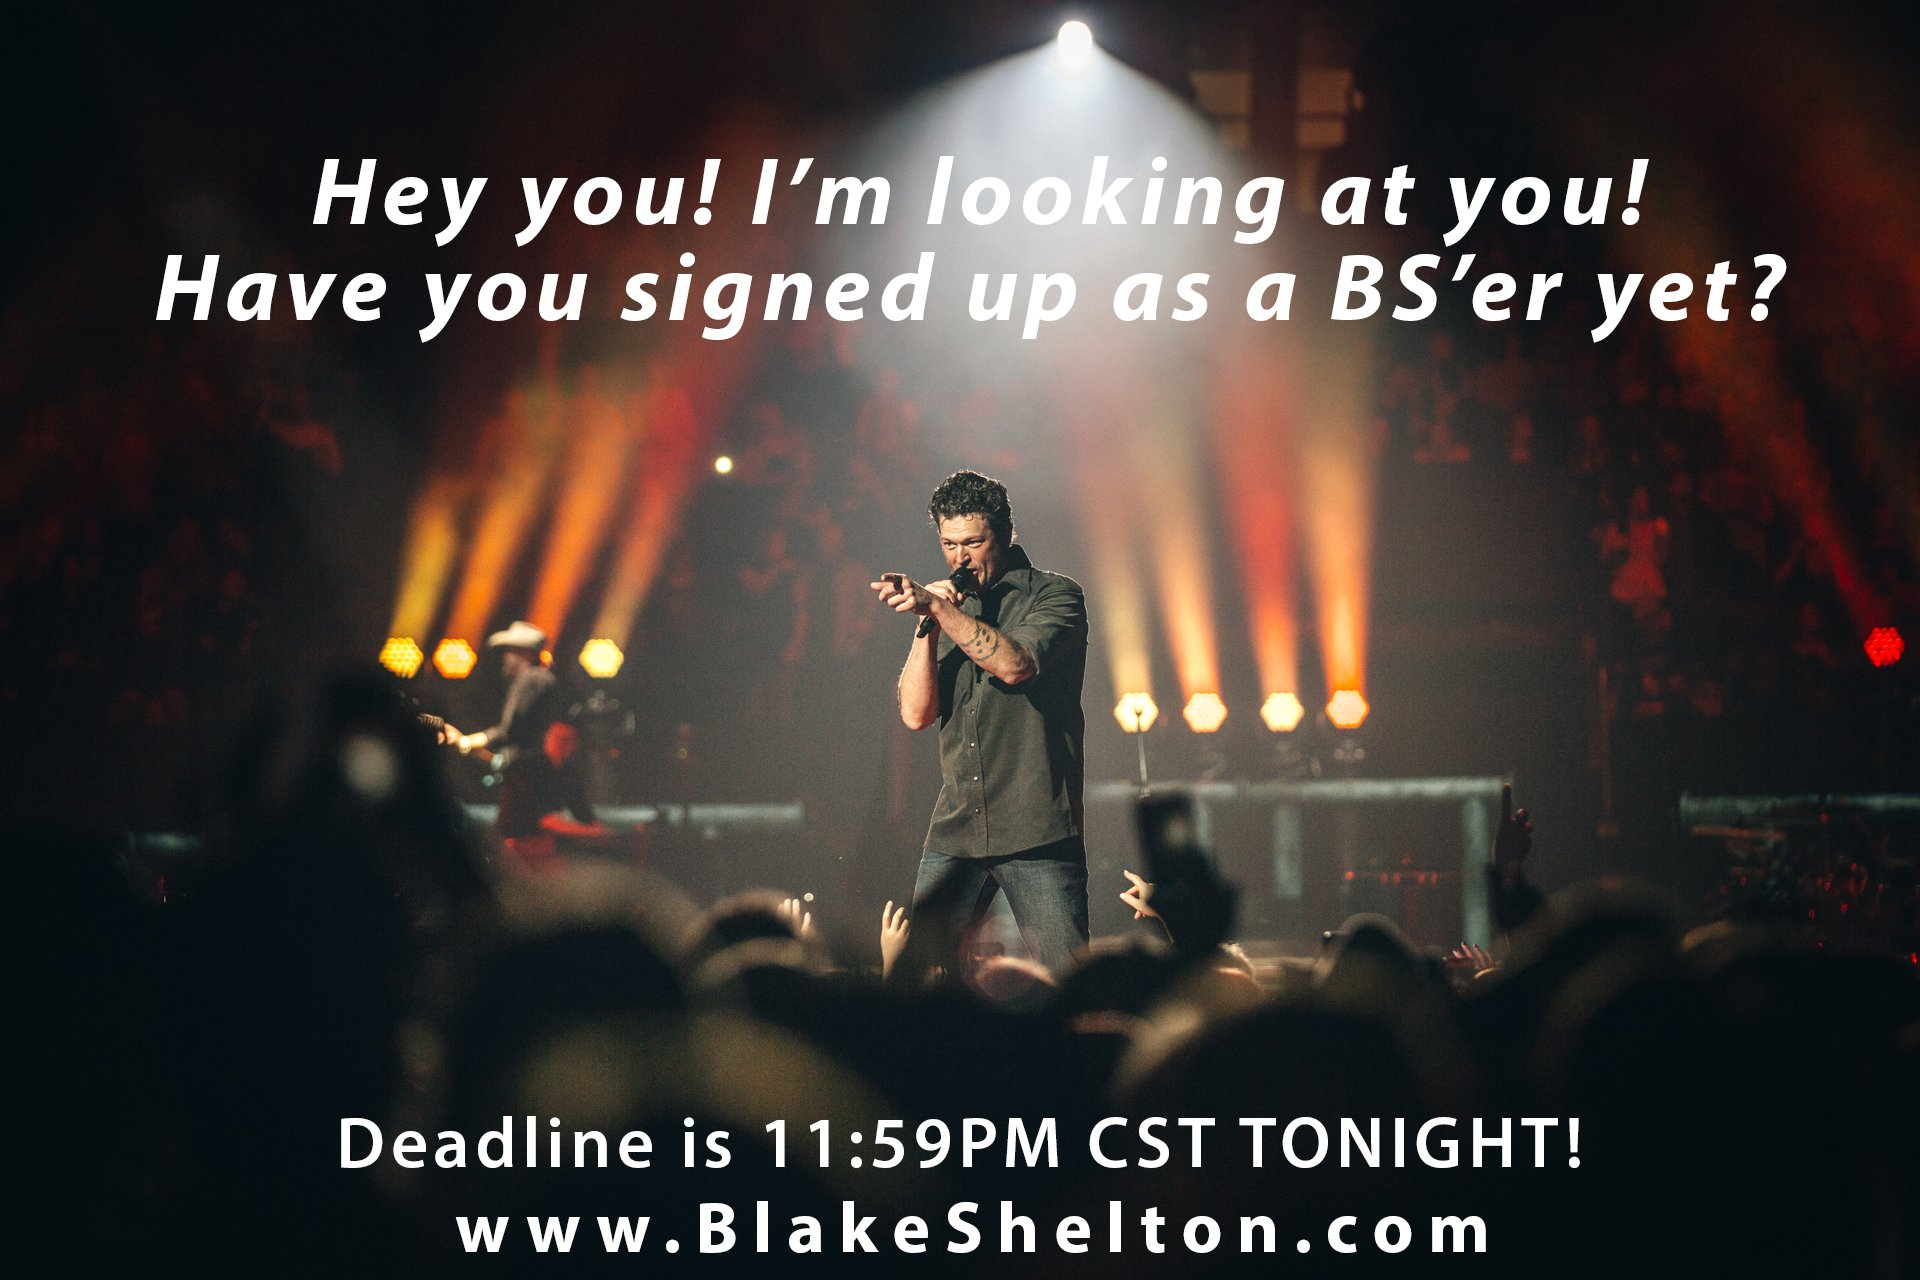 Don't forget to signup by TONIGHT 11:59PM CST for exclusive info about Blake's BIG ANNOUNCEMENT!! - Team BS https://t.co/3FIzChFrjs